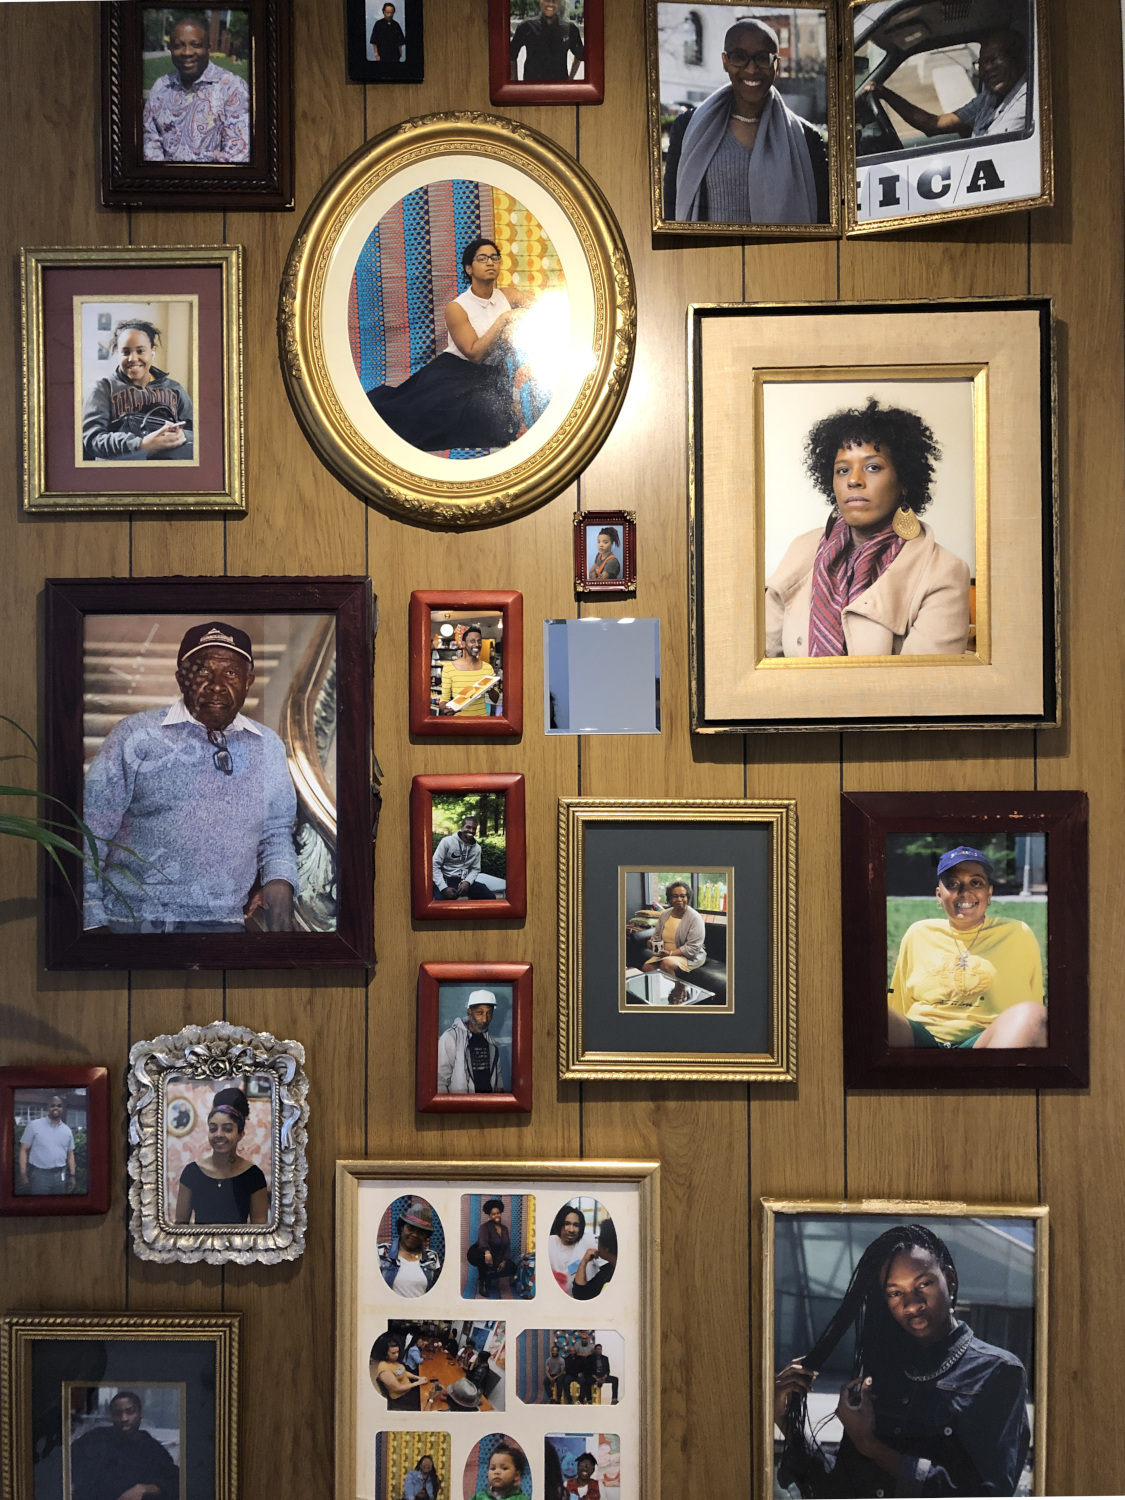 Maryland Institute Black Archives, by Deyane Moses, curated by john ros and organized by sam ros, THRESHOLD EXHIBITIONS, at Stand4 Gallery